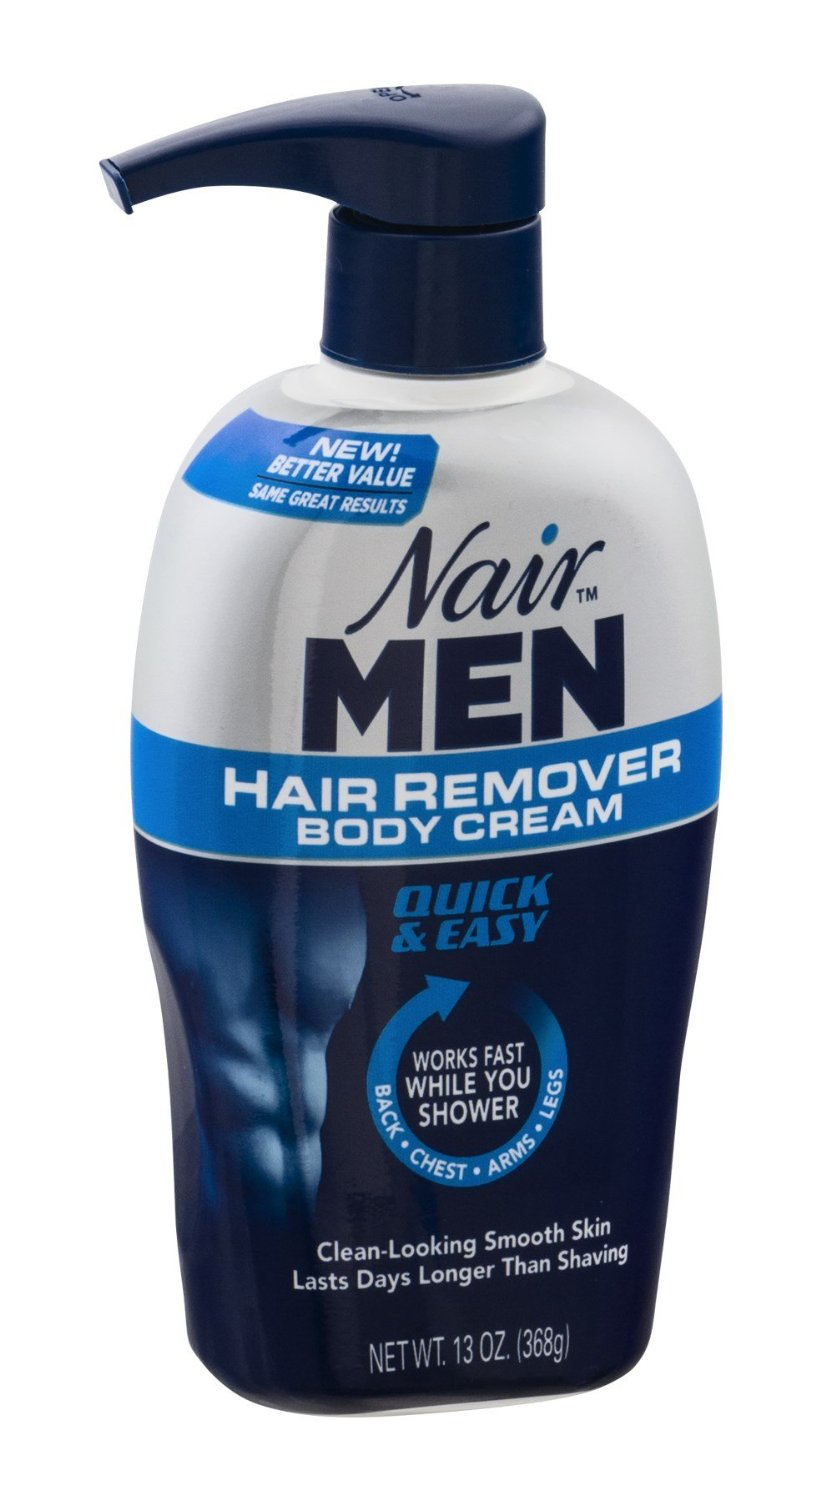 hight resolution of nair men hair remover body cream